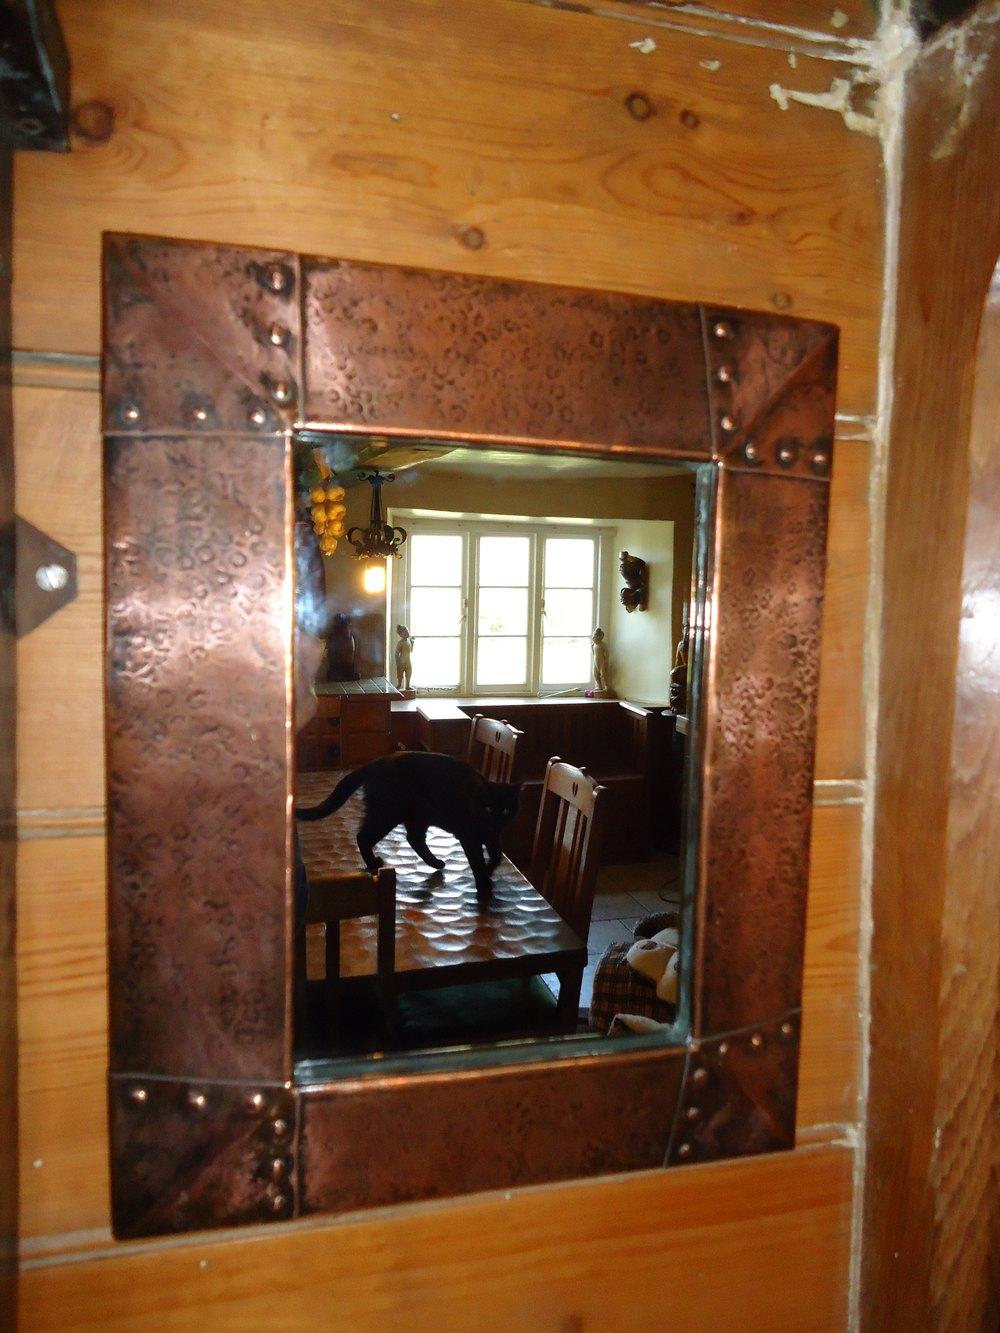 Arts and crafts mirrors - Arts Crafts Liberty Co Copper Mirror